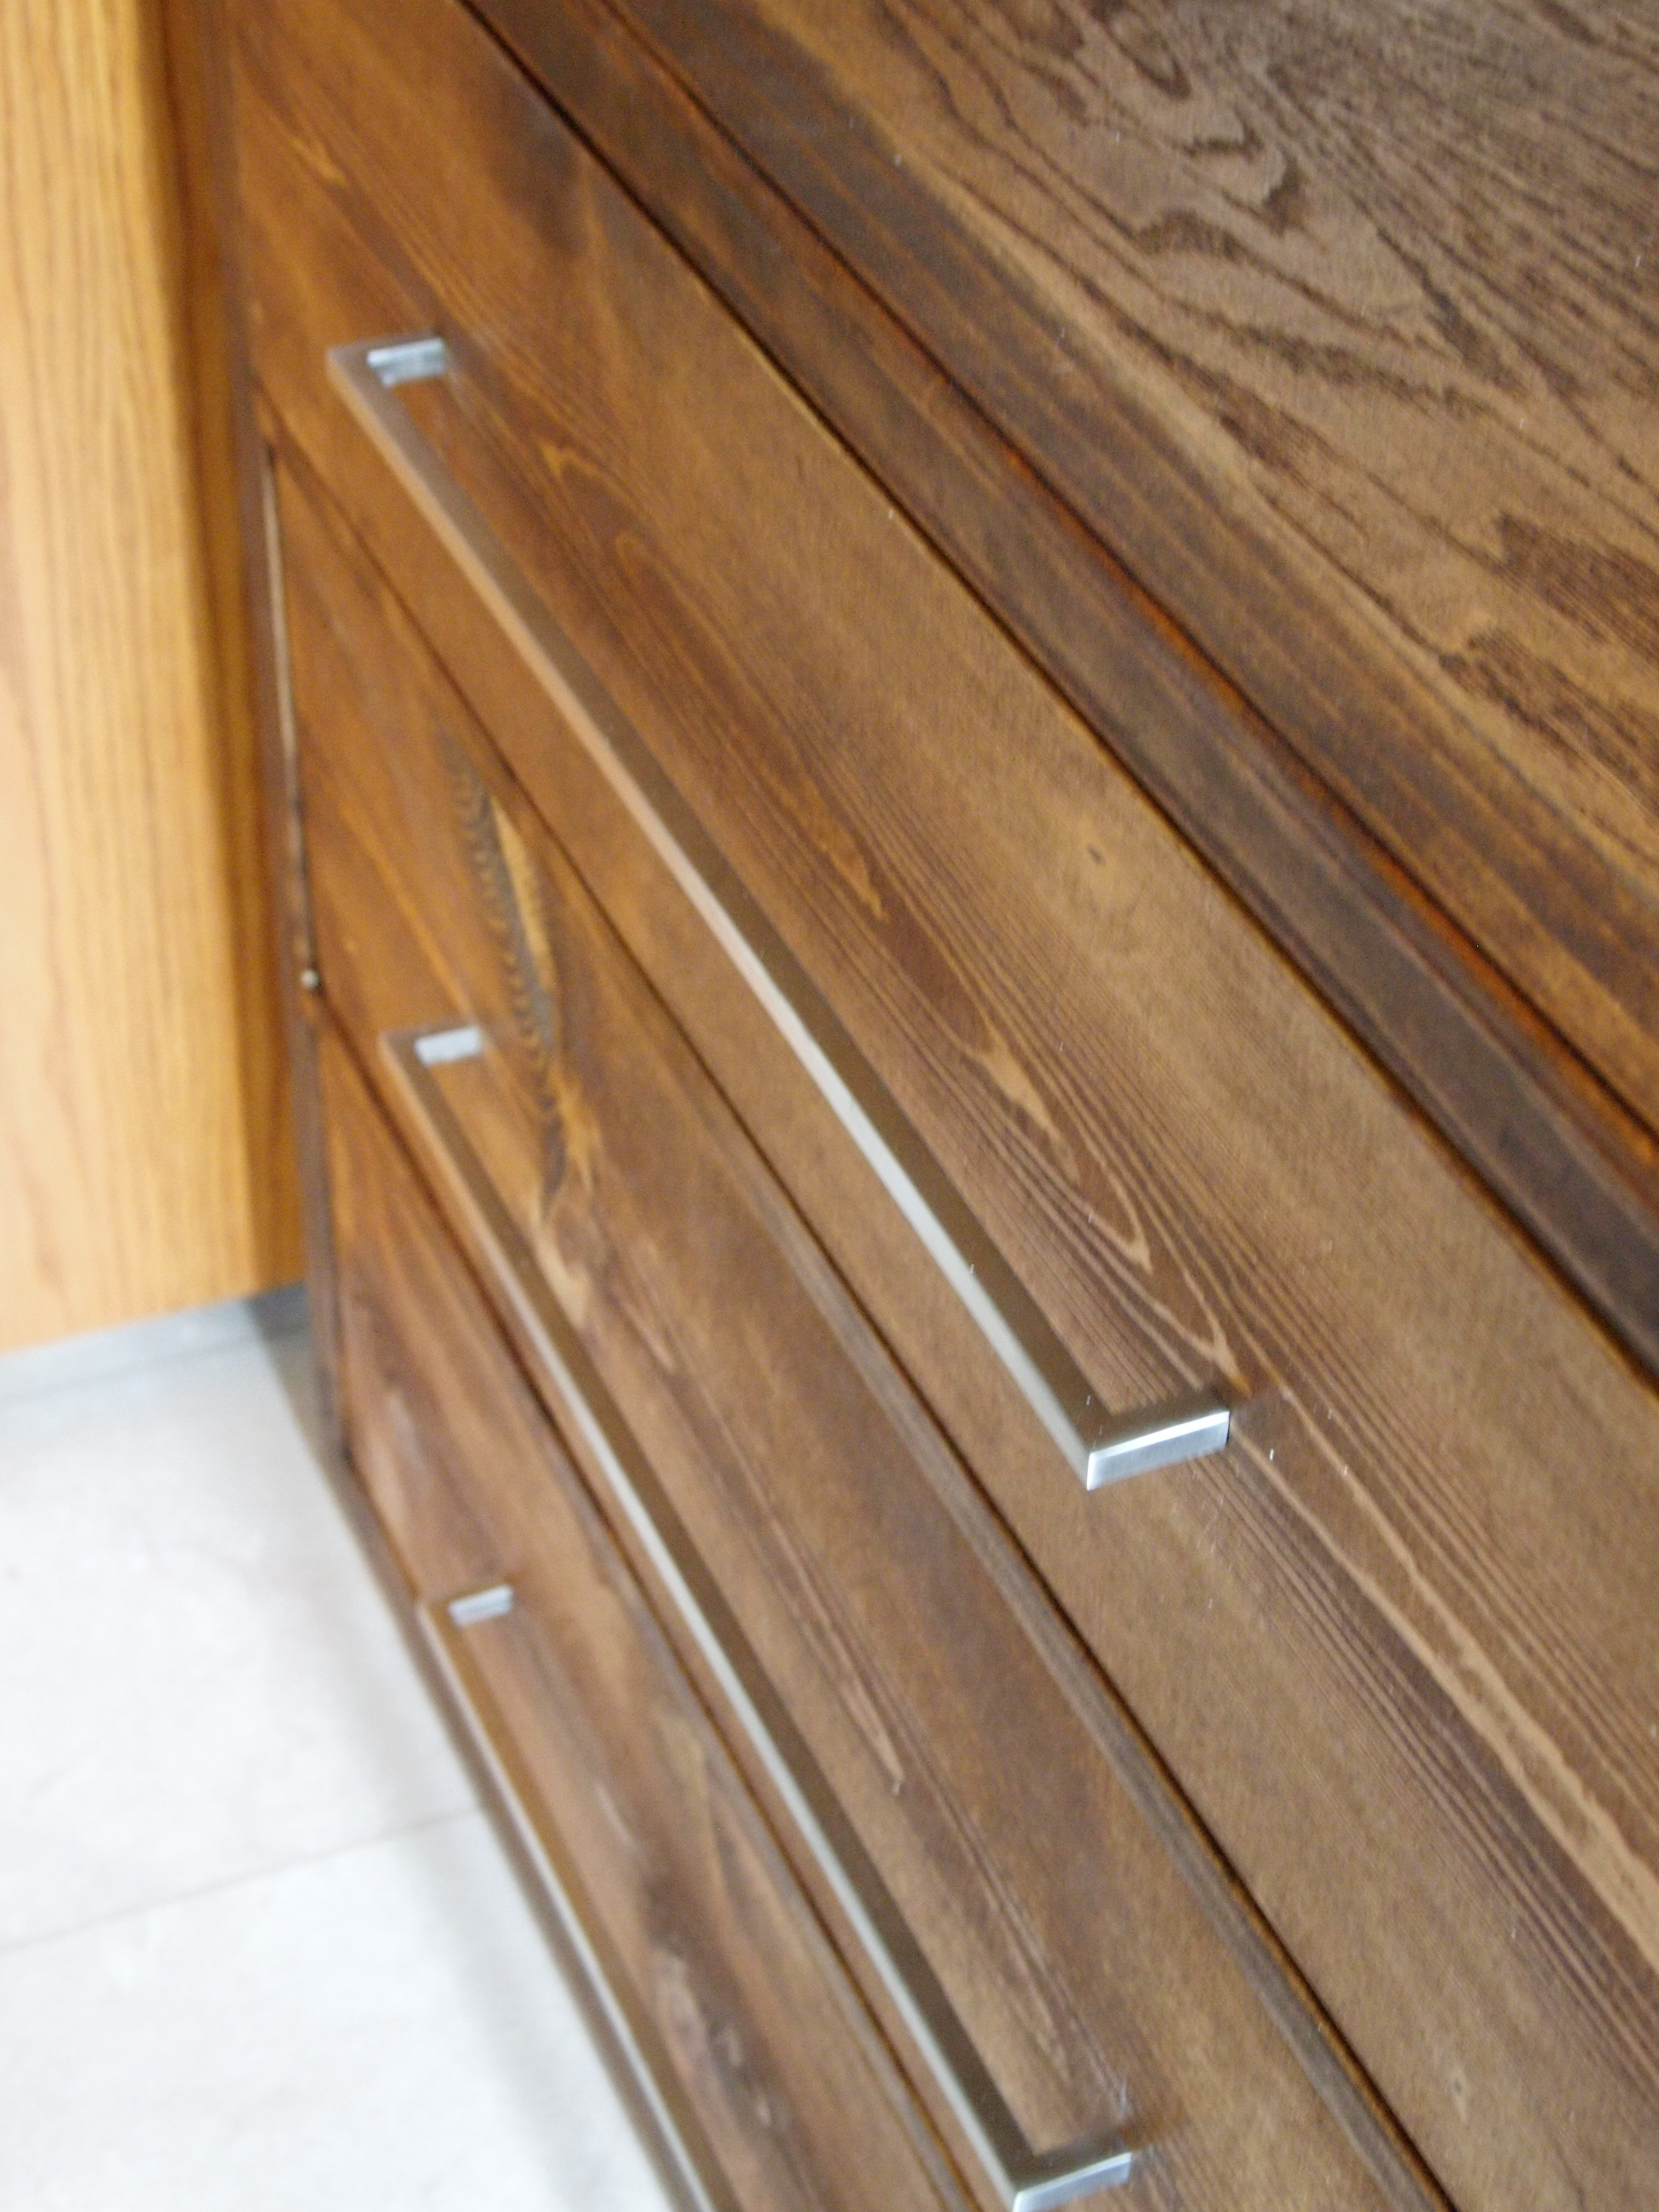 Picture of Staining, Hardware and Handles